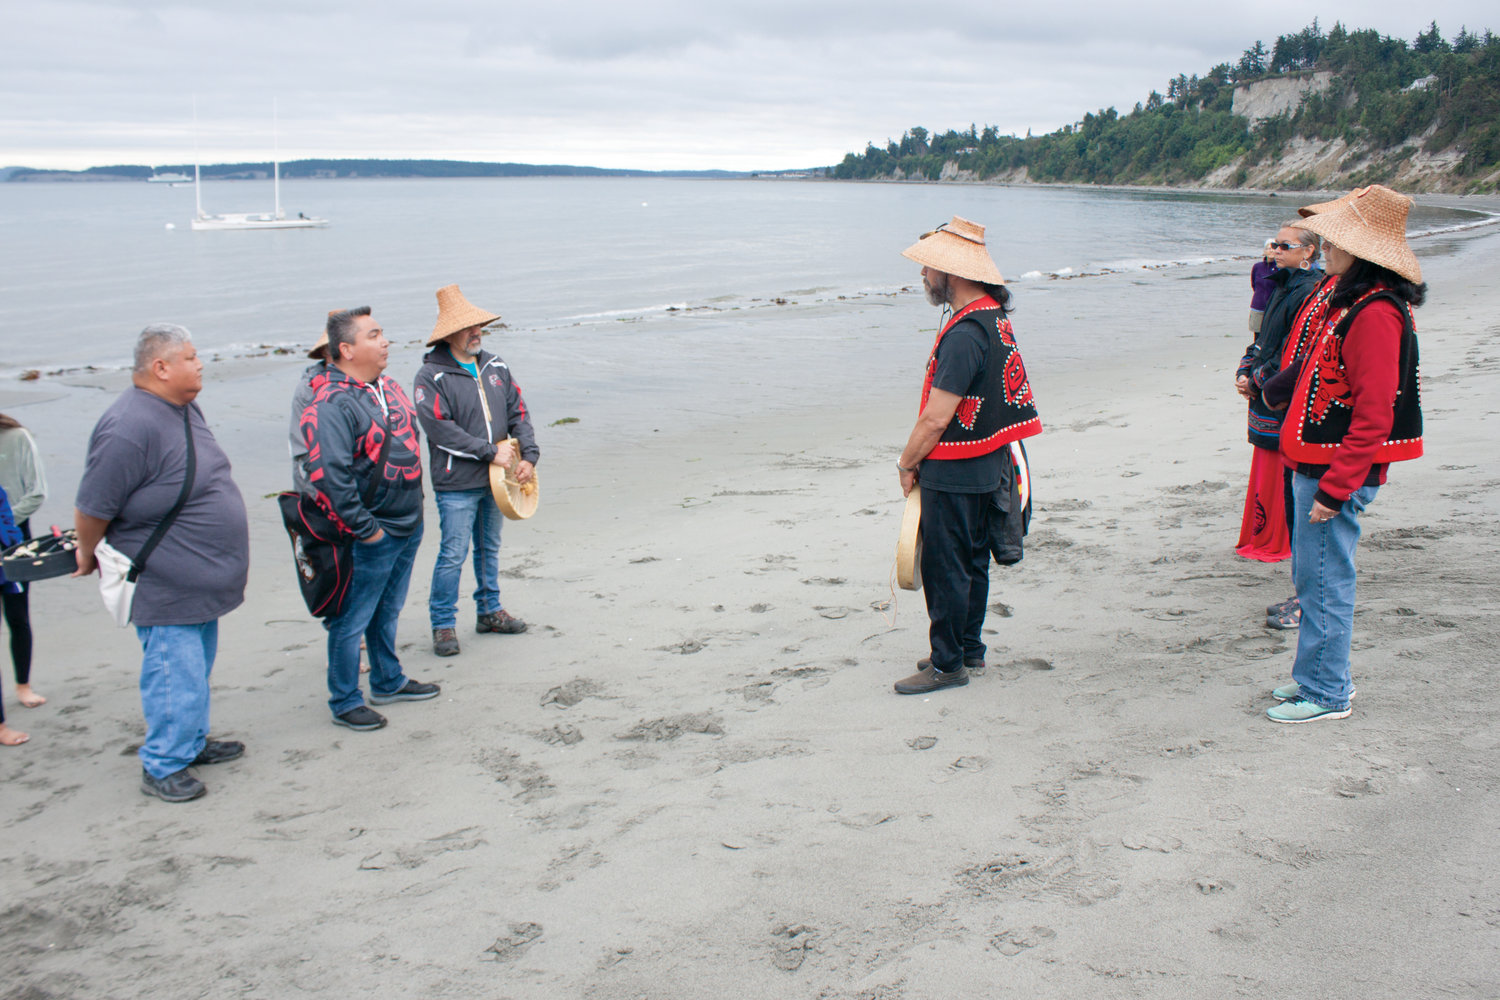 Tribal members greet one another on the shores of Fort Worden State Park July 17.